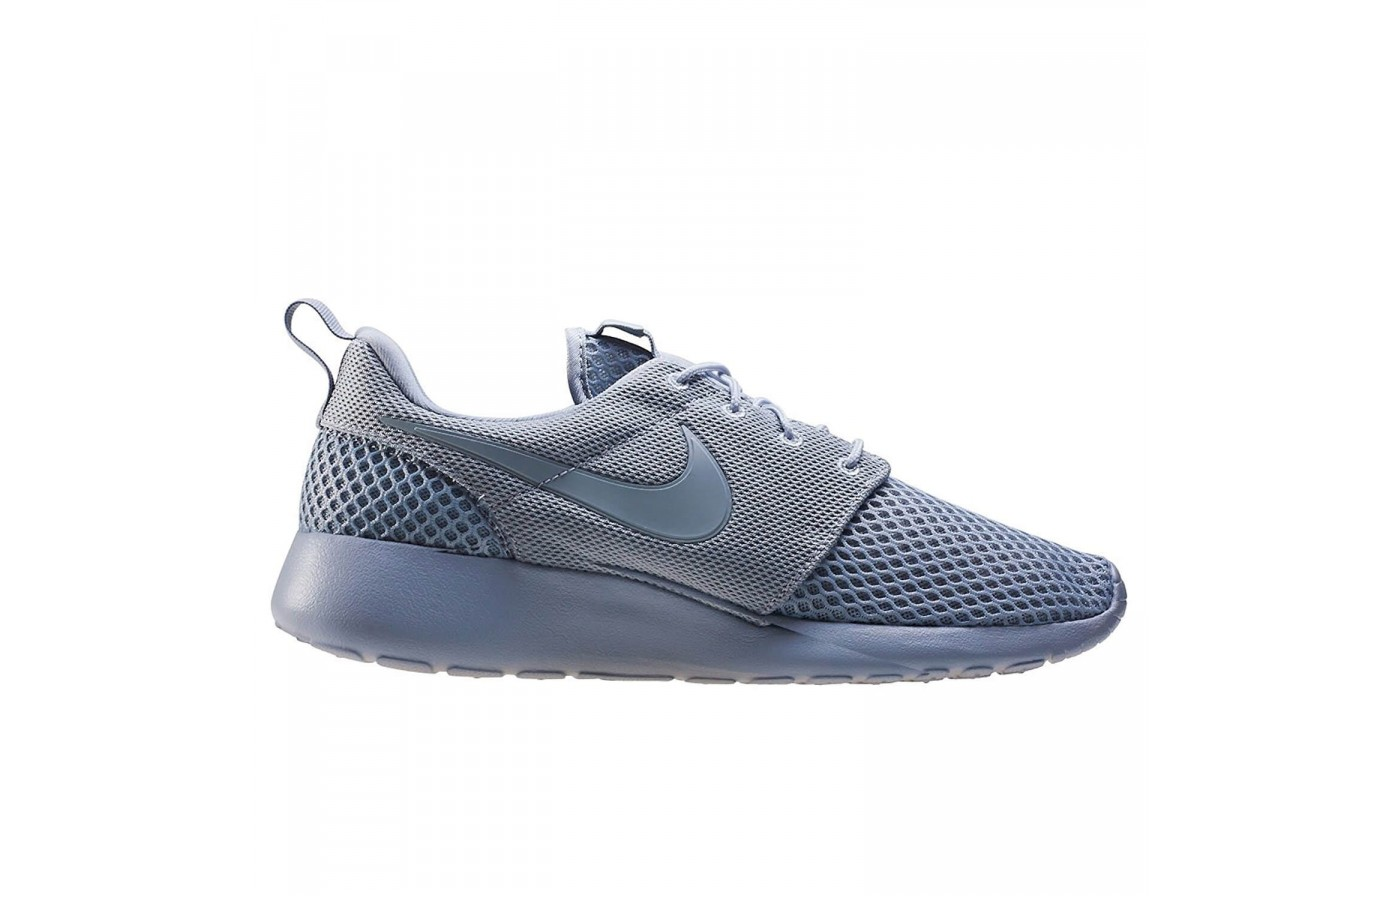 The Nike Roshe One SE features a midsole with a high drop made from Phylon EVA foam.